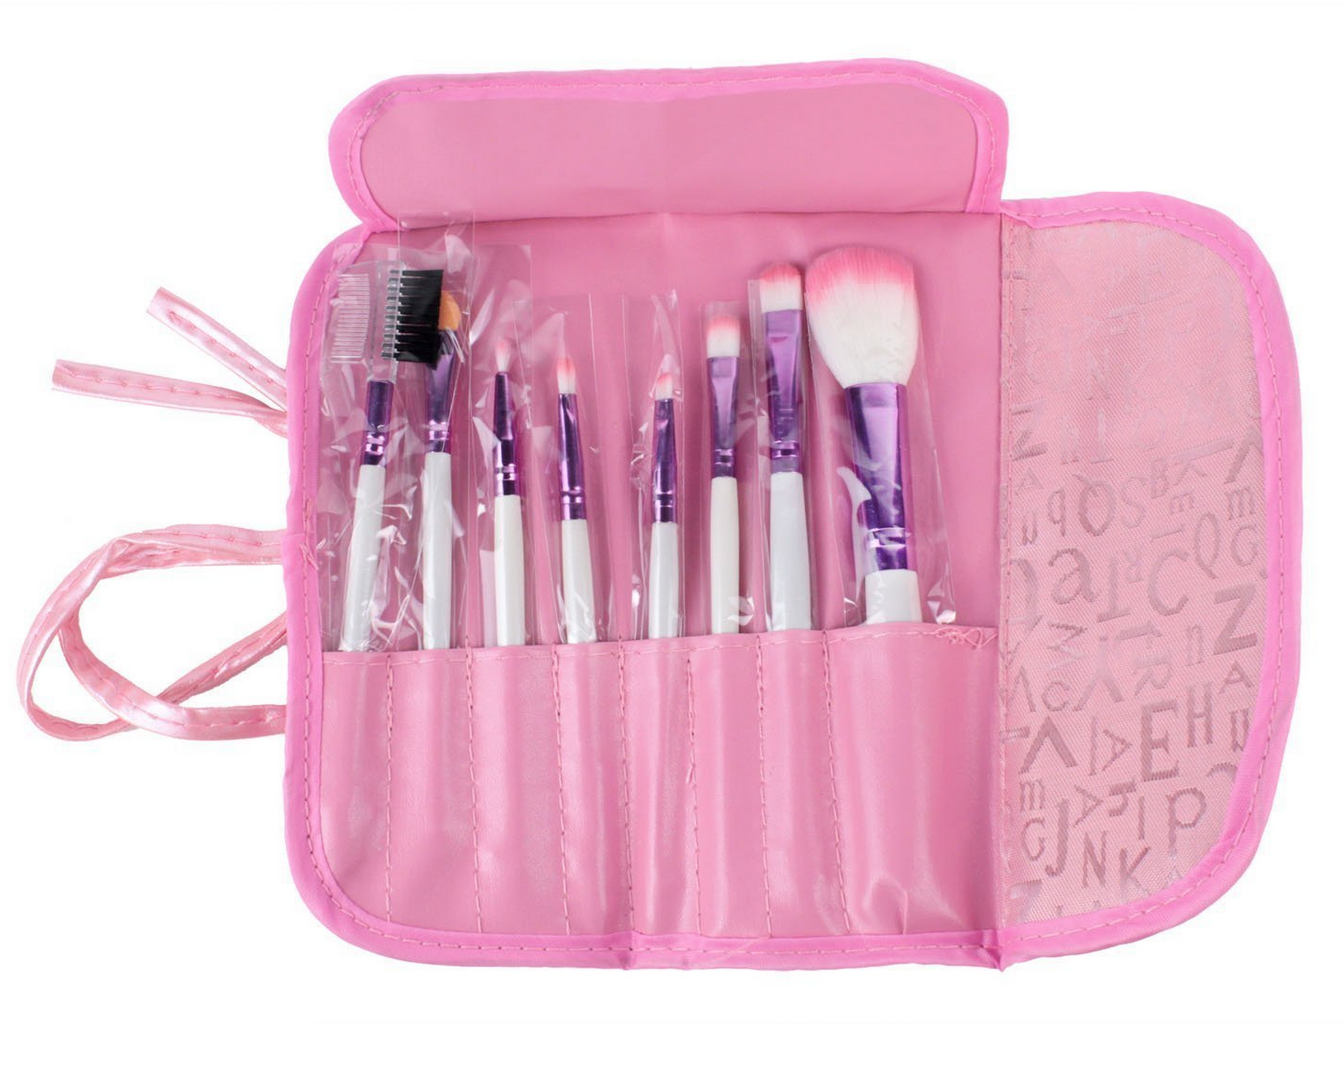 8-pc Professional Cosmetic Makeup Brush Set Only $3.14 + FREE Shipping!